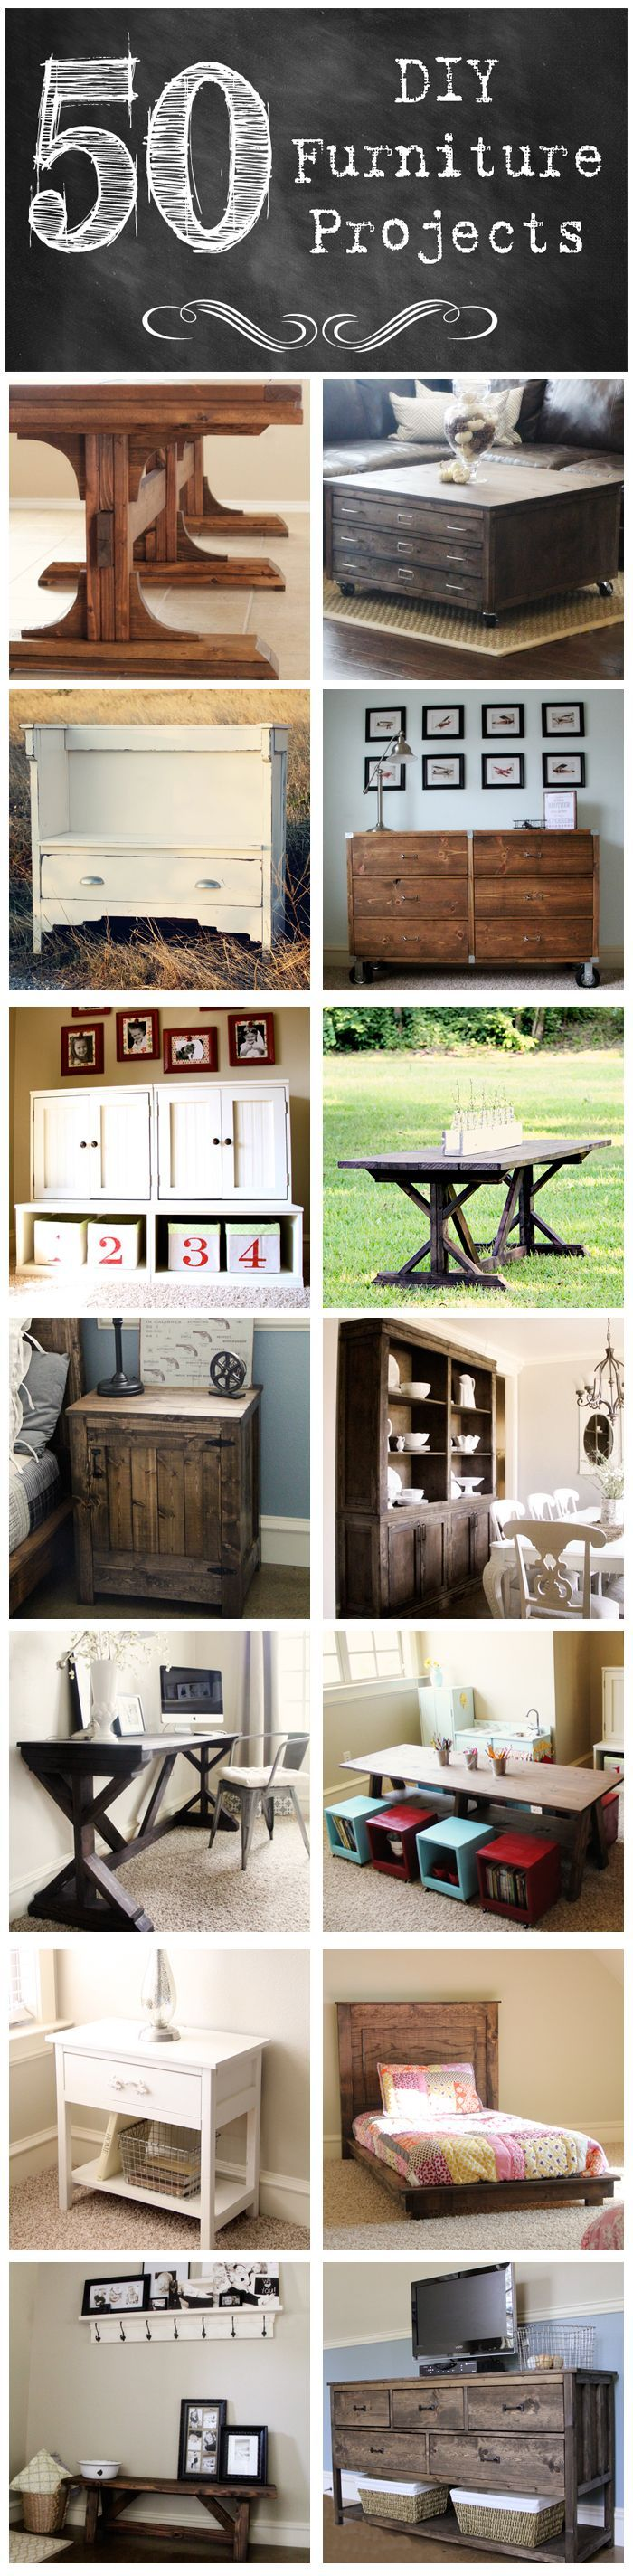 50 DIY Furniture Projects Build your own furniture and save a TON